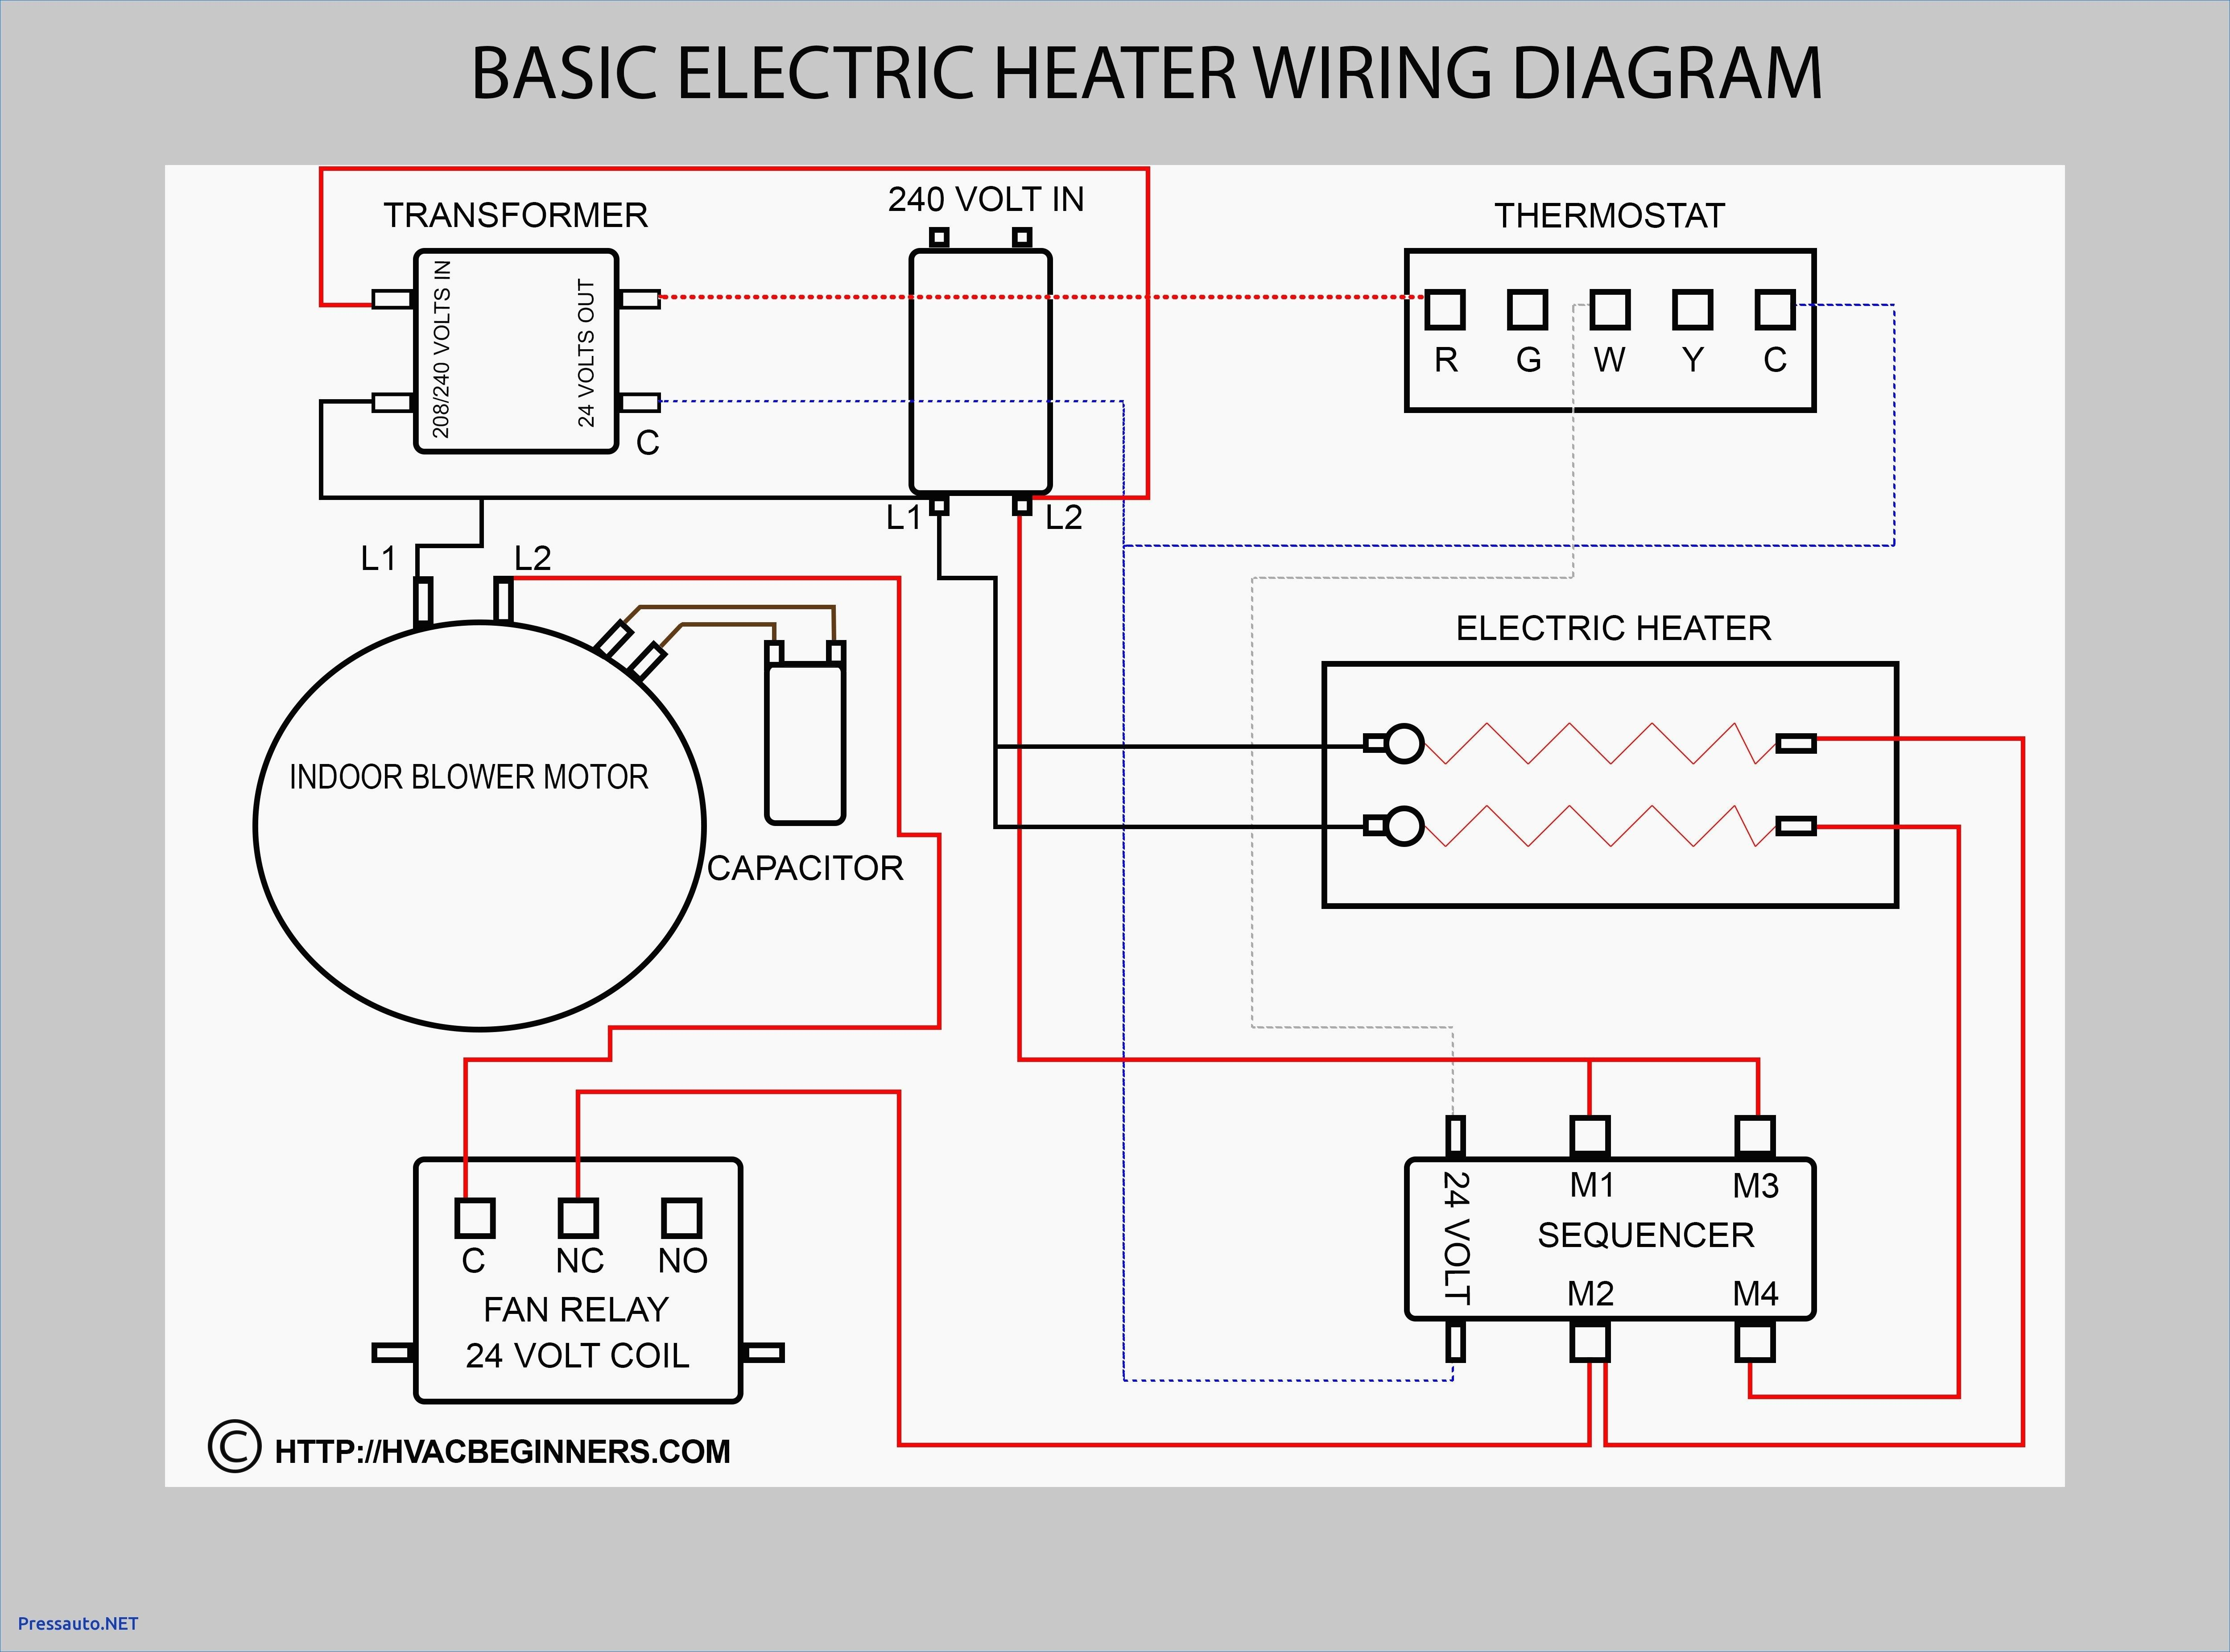 medium resolution of electric furnace wiring diagram 240 volt wiring diagrams value electric furnace wiring diagram 240 volt